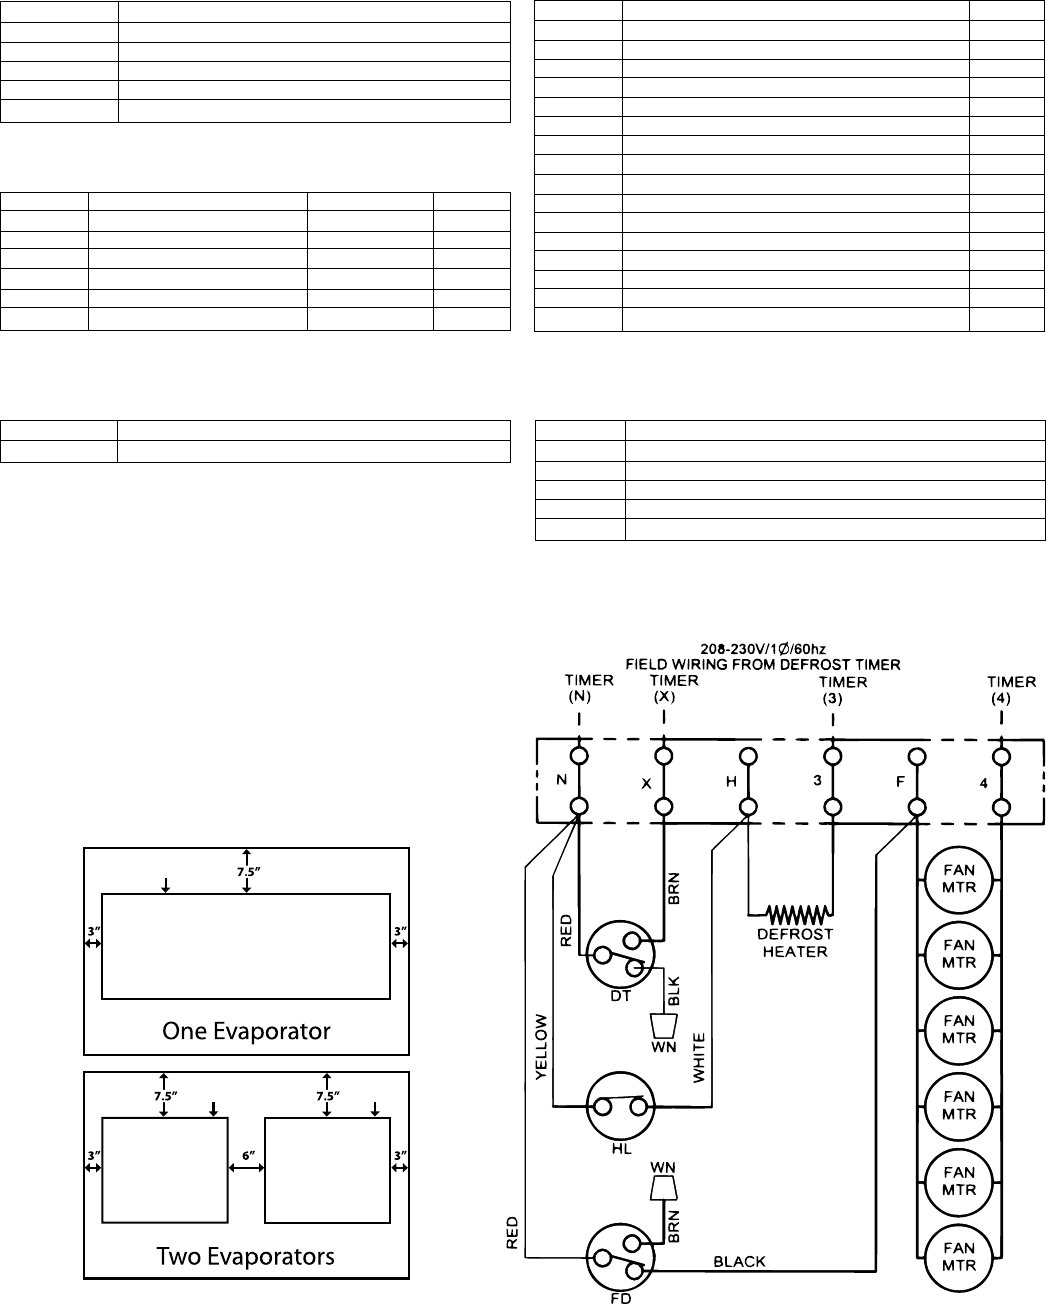 2f271777 ed48 431c affa 693c84f3fb6b bgb page 11 of heatcraft refrigeration products humidifier 25005601 heatcraft wiring diagram at webbmarketing.co